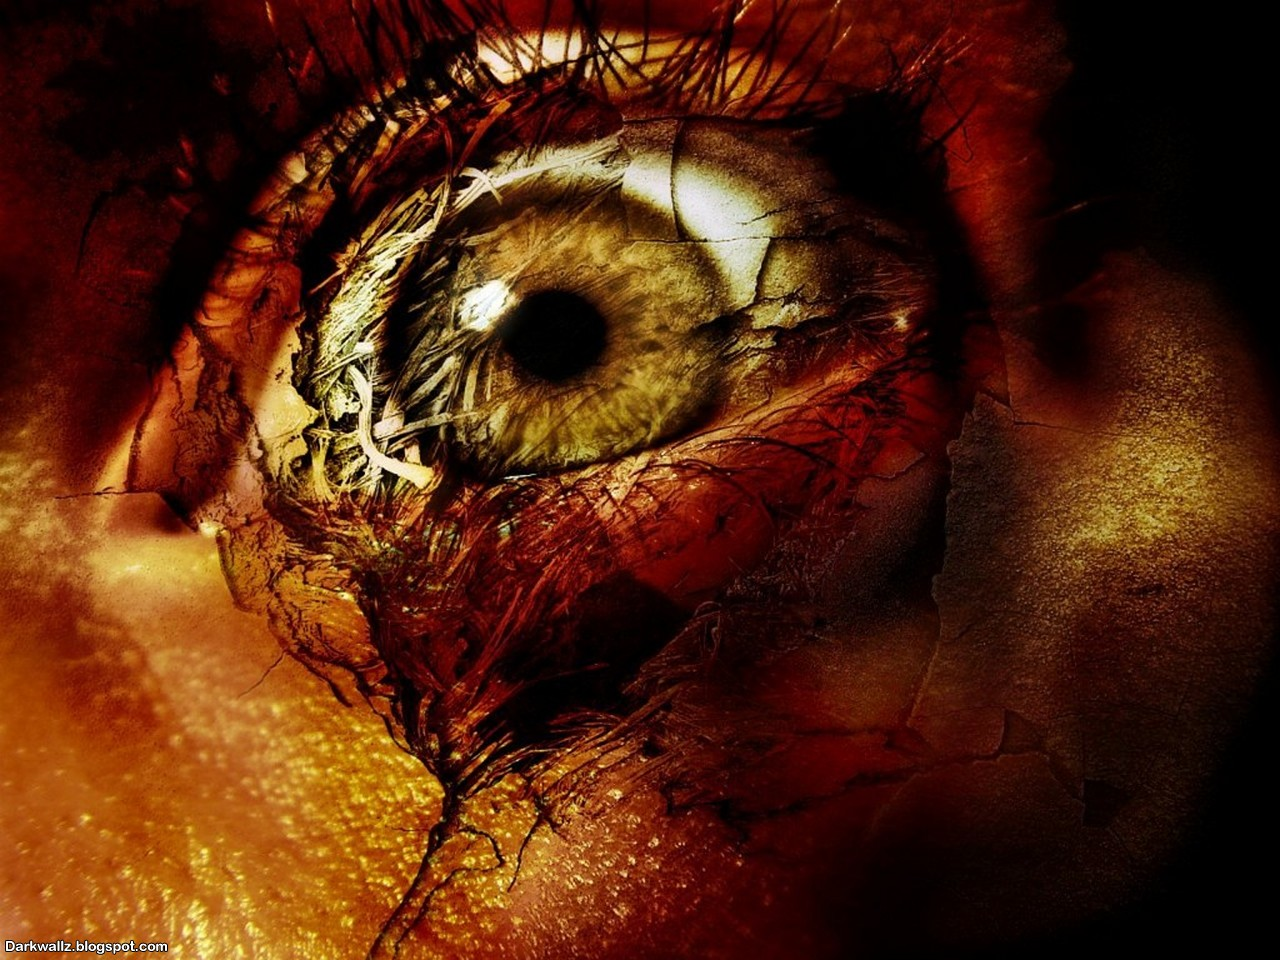 Scary Eyes Wallpapers 09 | Dark Wallpaper Download